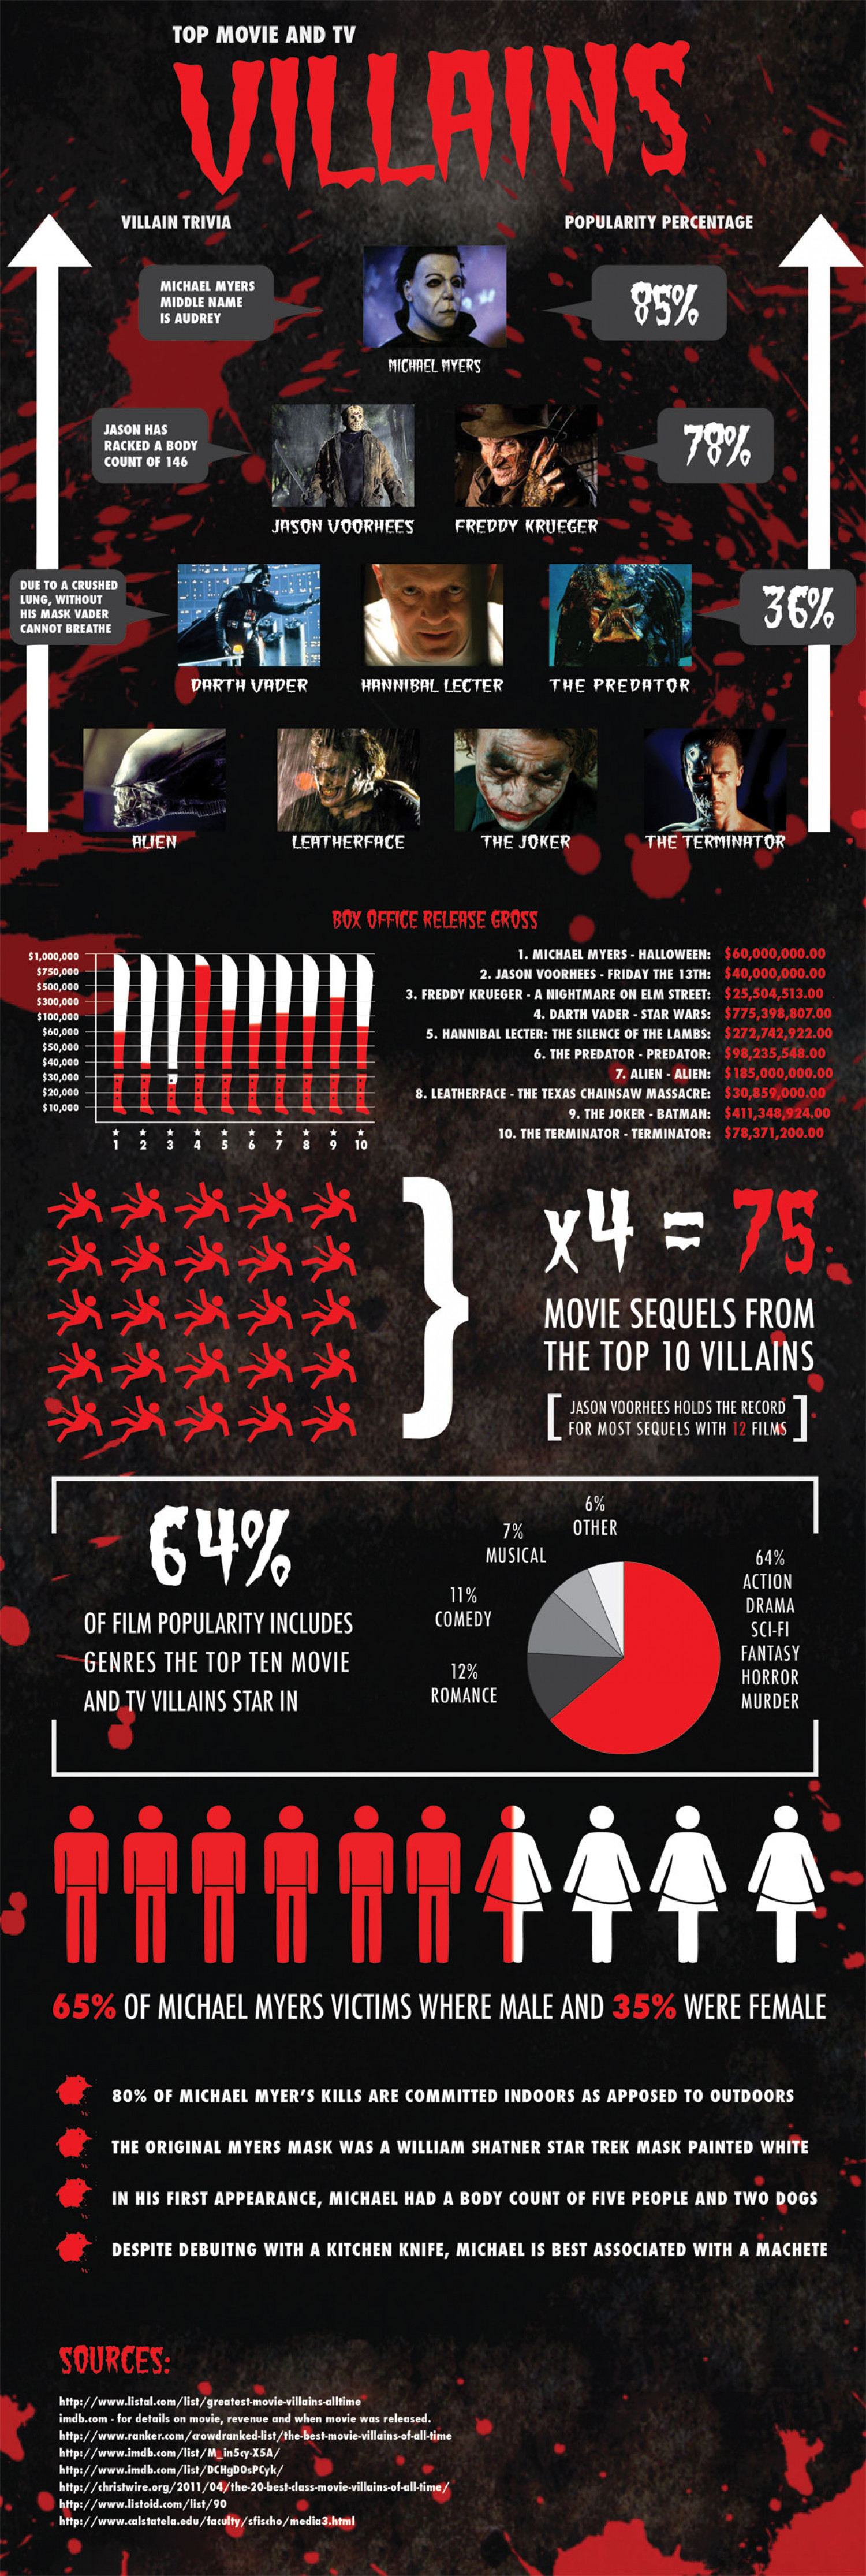 Top Movie and TV Villains  Infographic